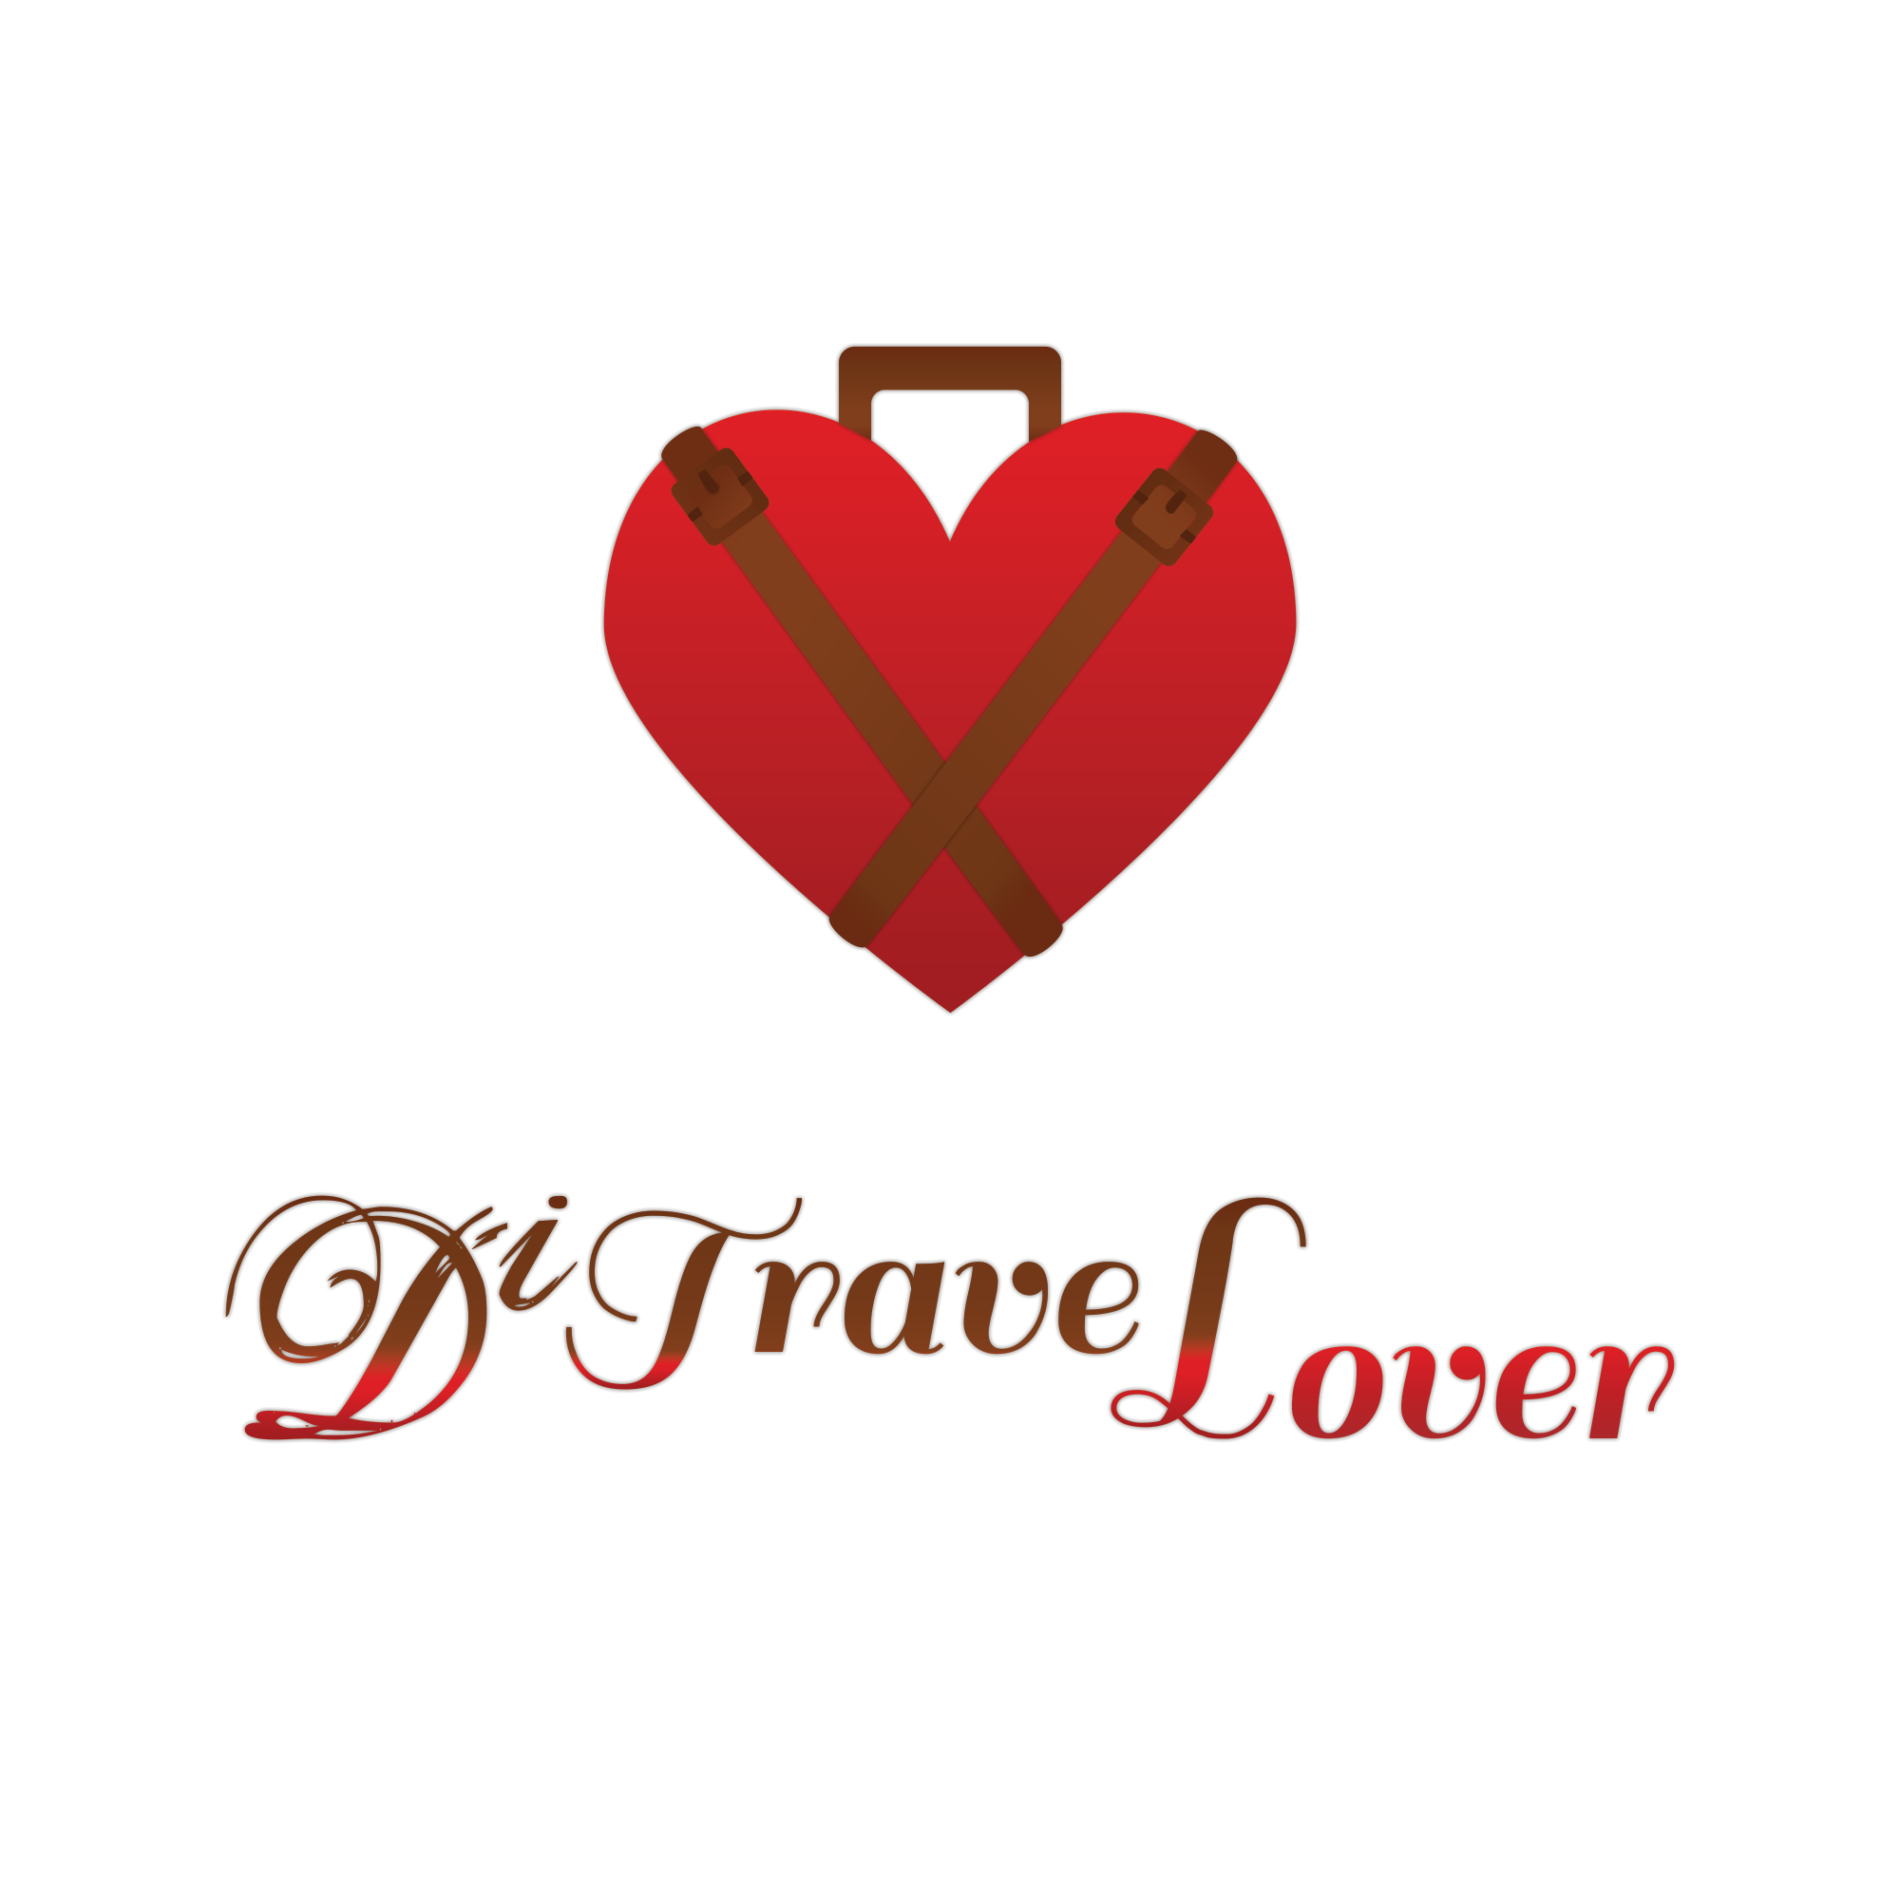 ditravelover logo design